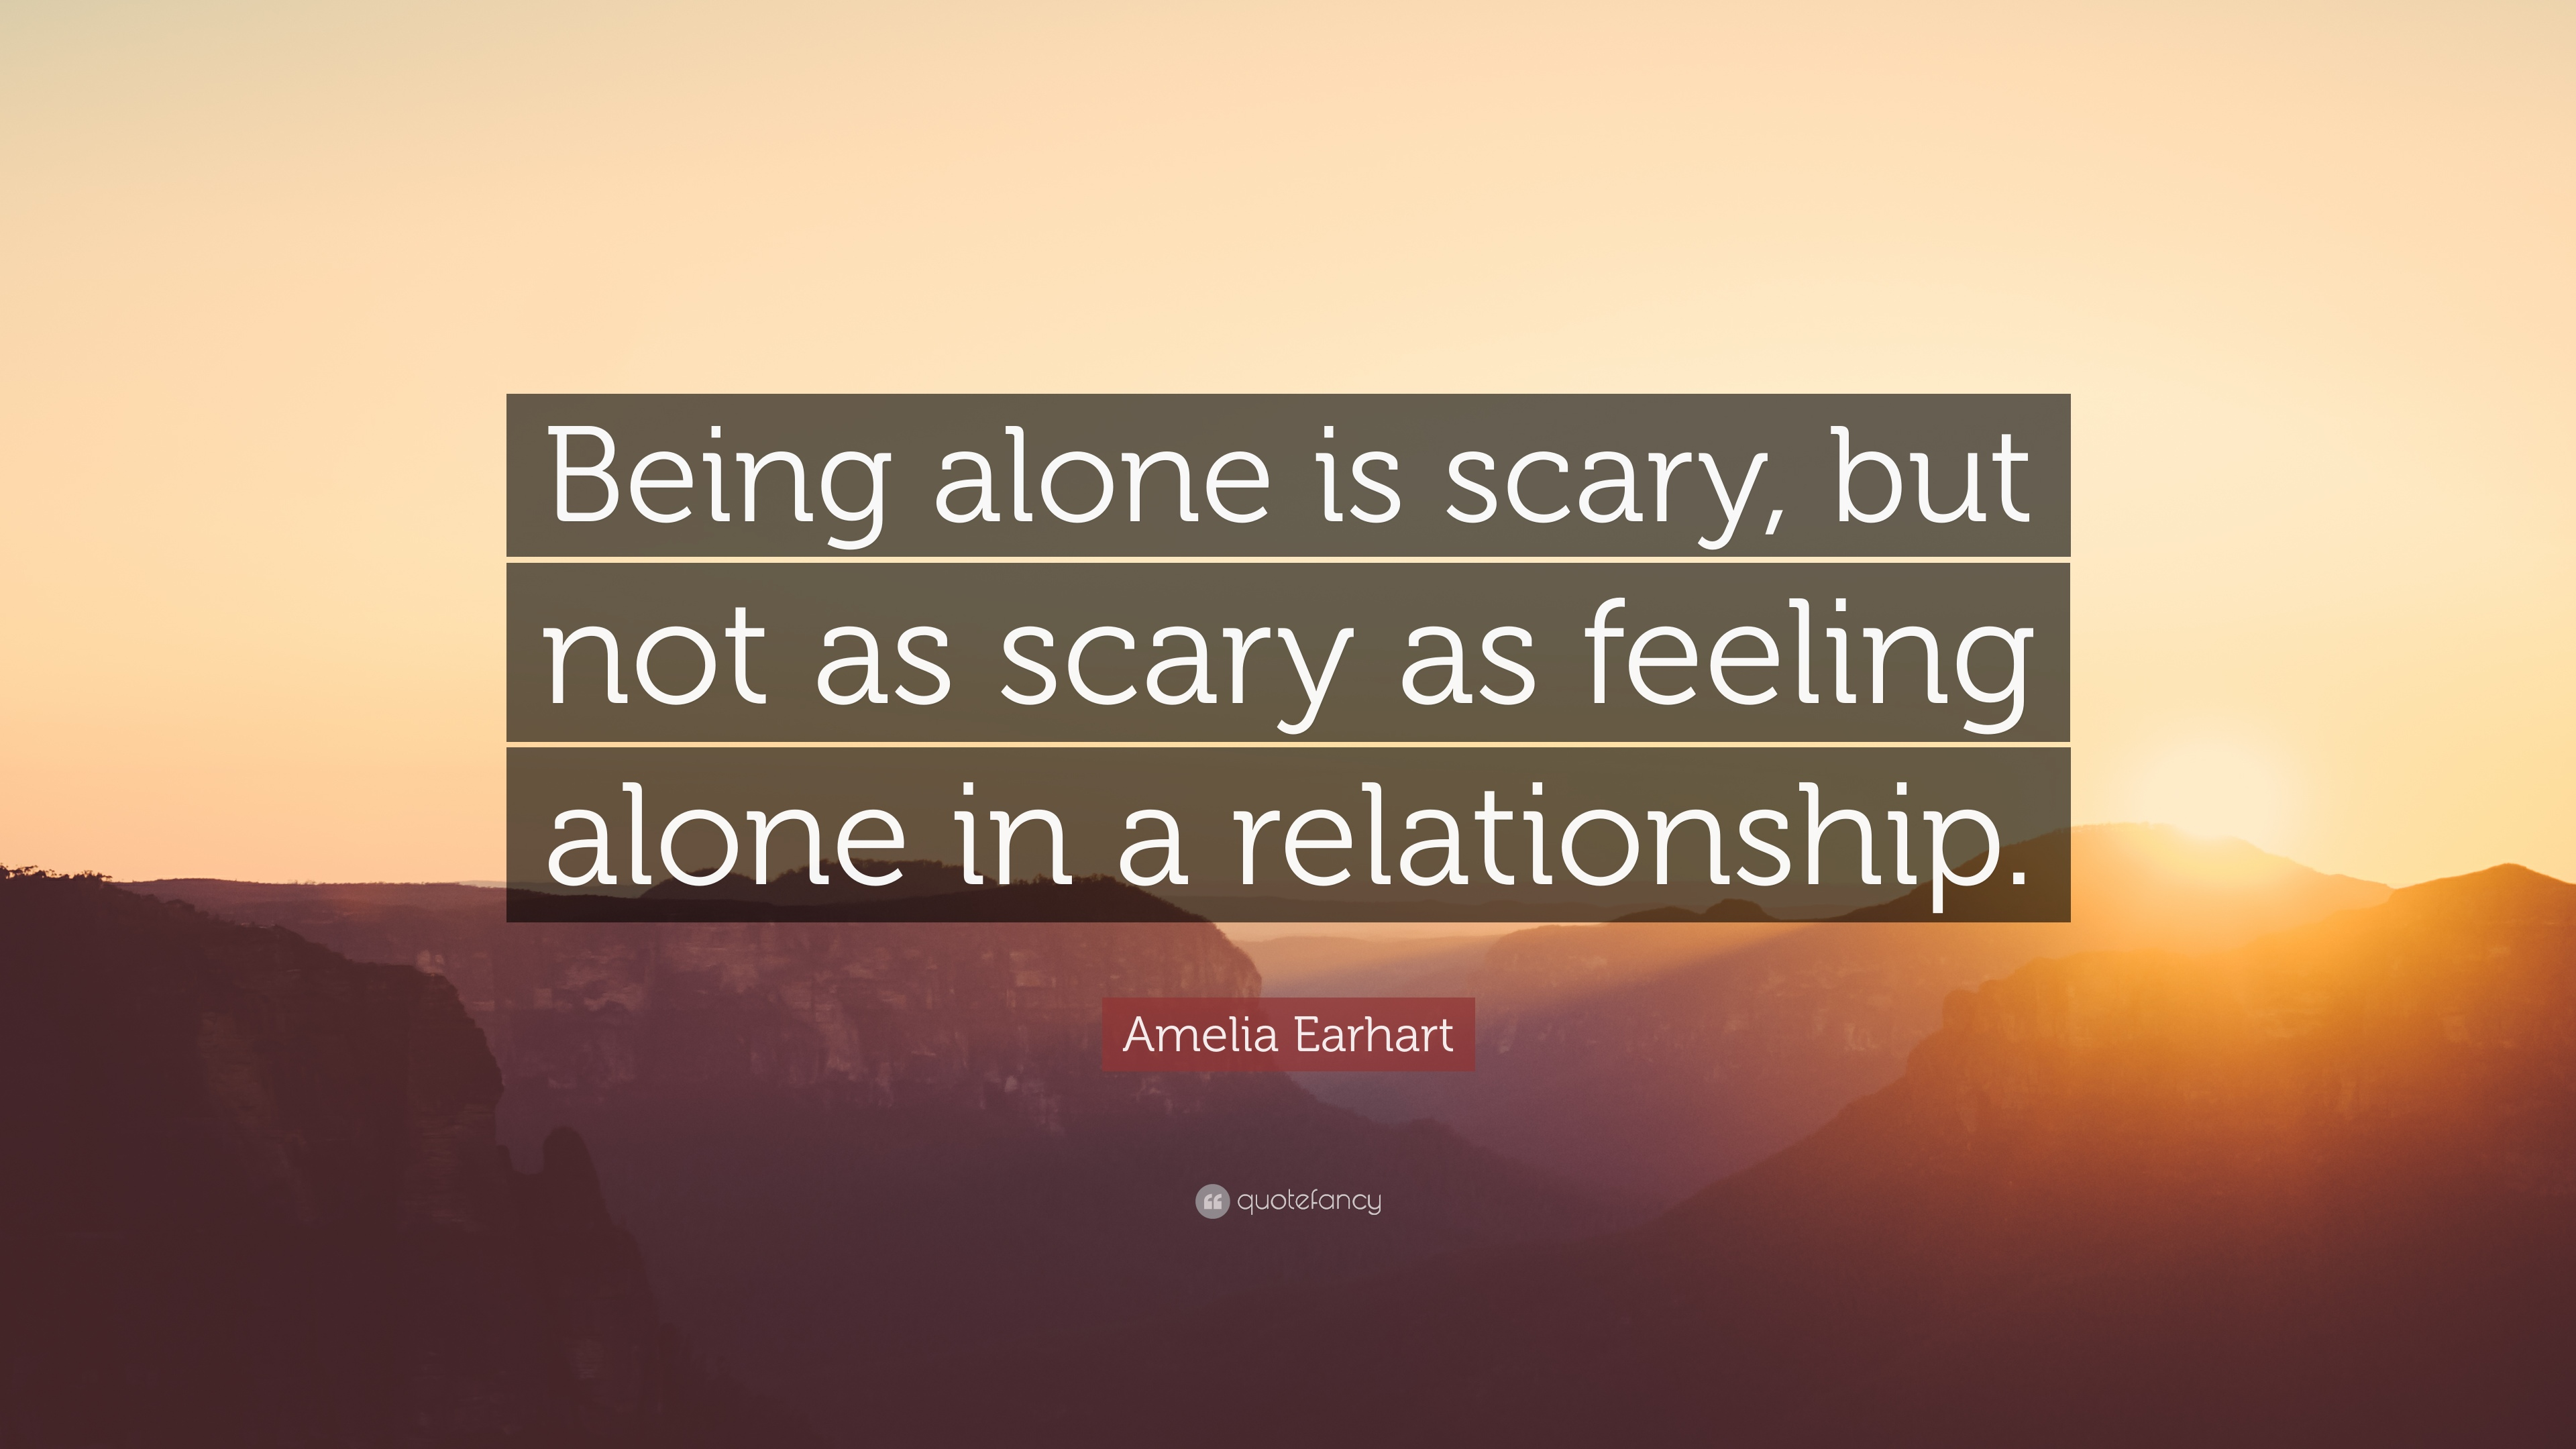 Robin williams quote wacky jacky in cyberspace - Amelia Earhart Quote Being Alone Is Scary But Not As